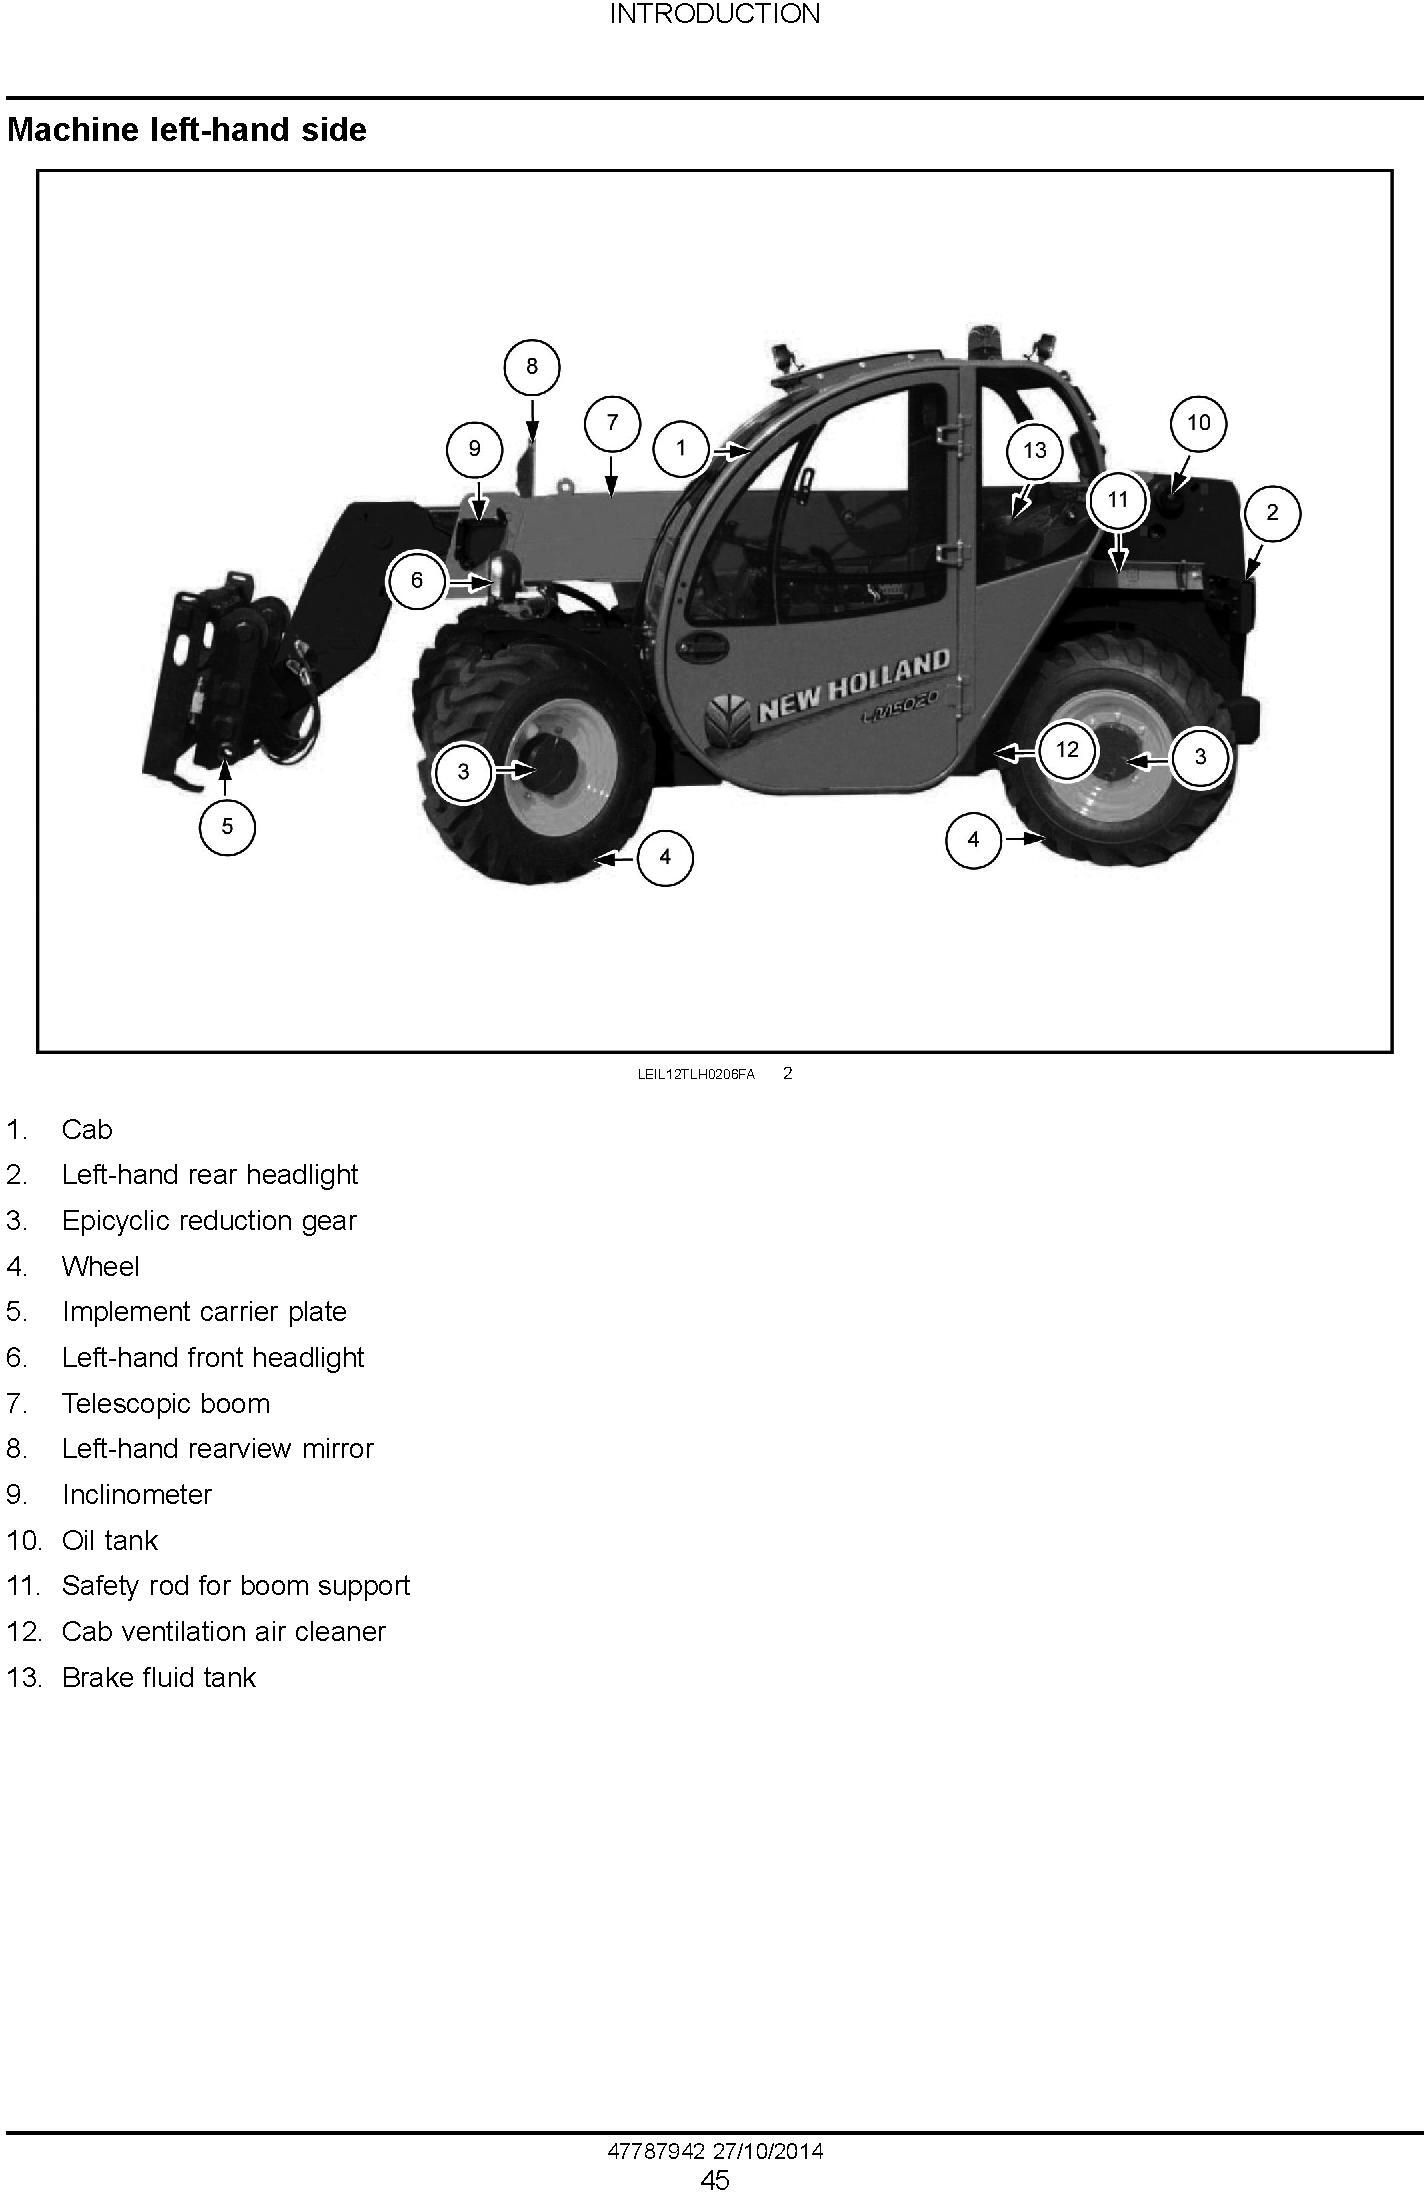 New Holland LM5020, LM5030 Tier 3 Telehandlers Service Manual - 1